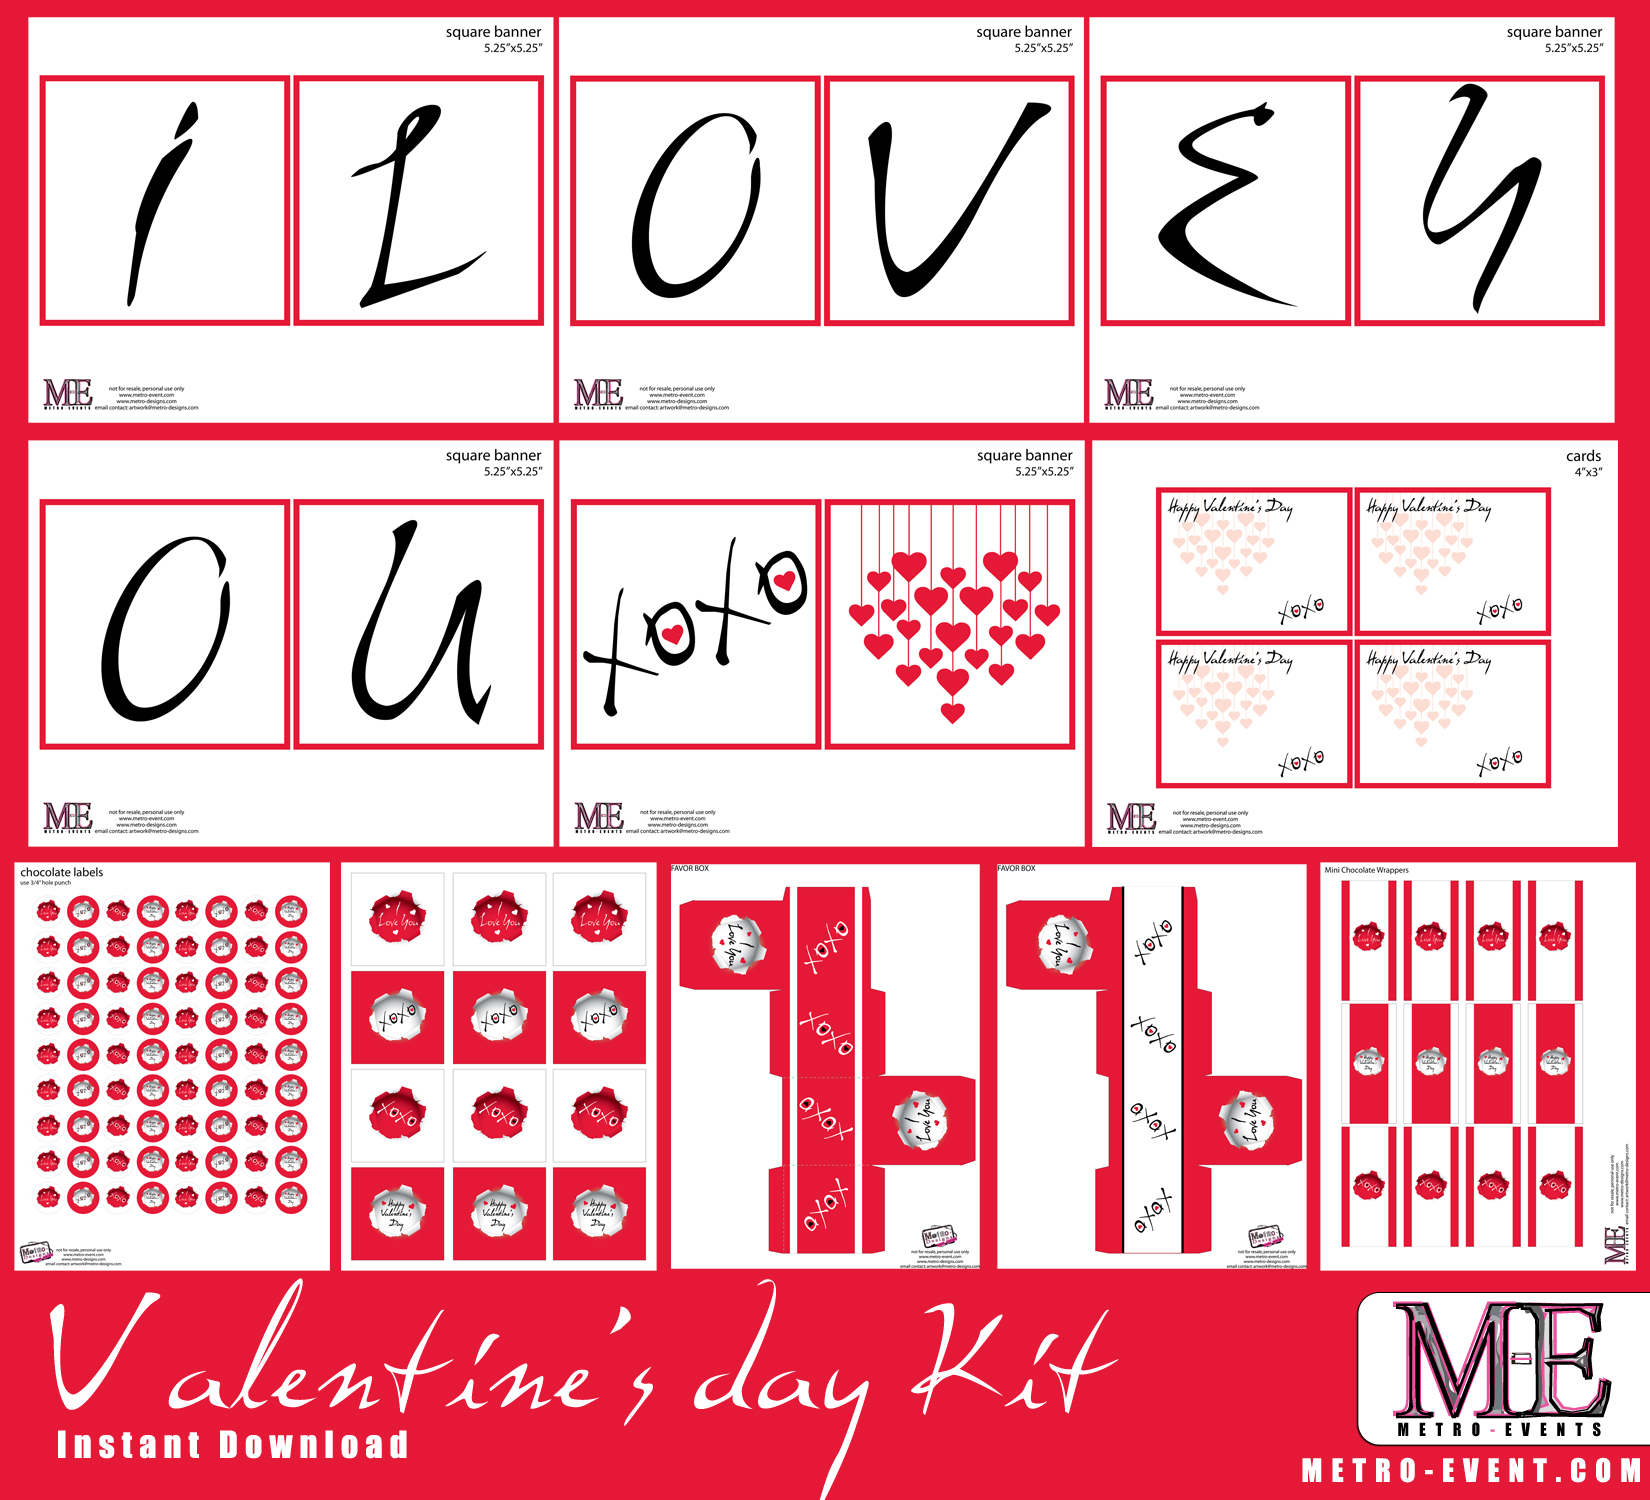 picture relating to Valentine Banner Printable identified as Valentines working day Banner, Valentines working day notes, Valentines working day playing cards. Valentines working day printables, Valentines working day Decorations versus Metro-Functions Celebration